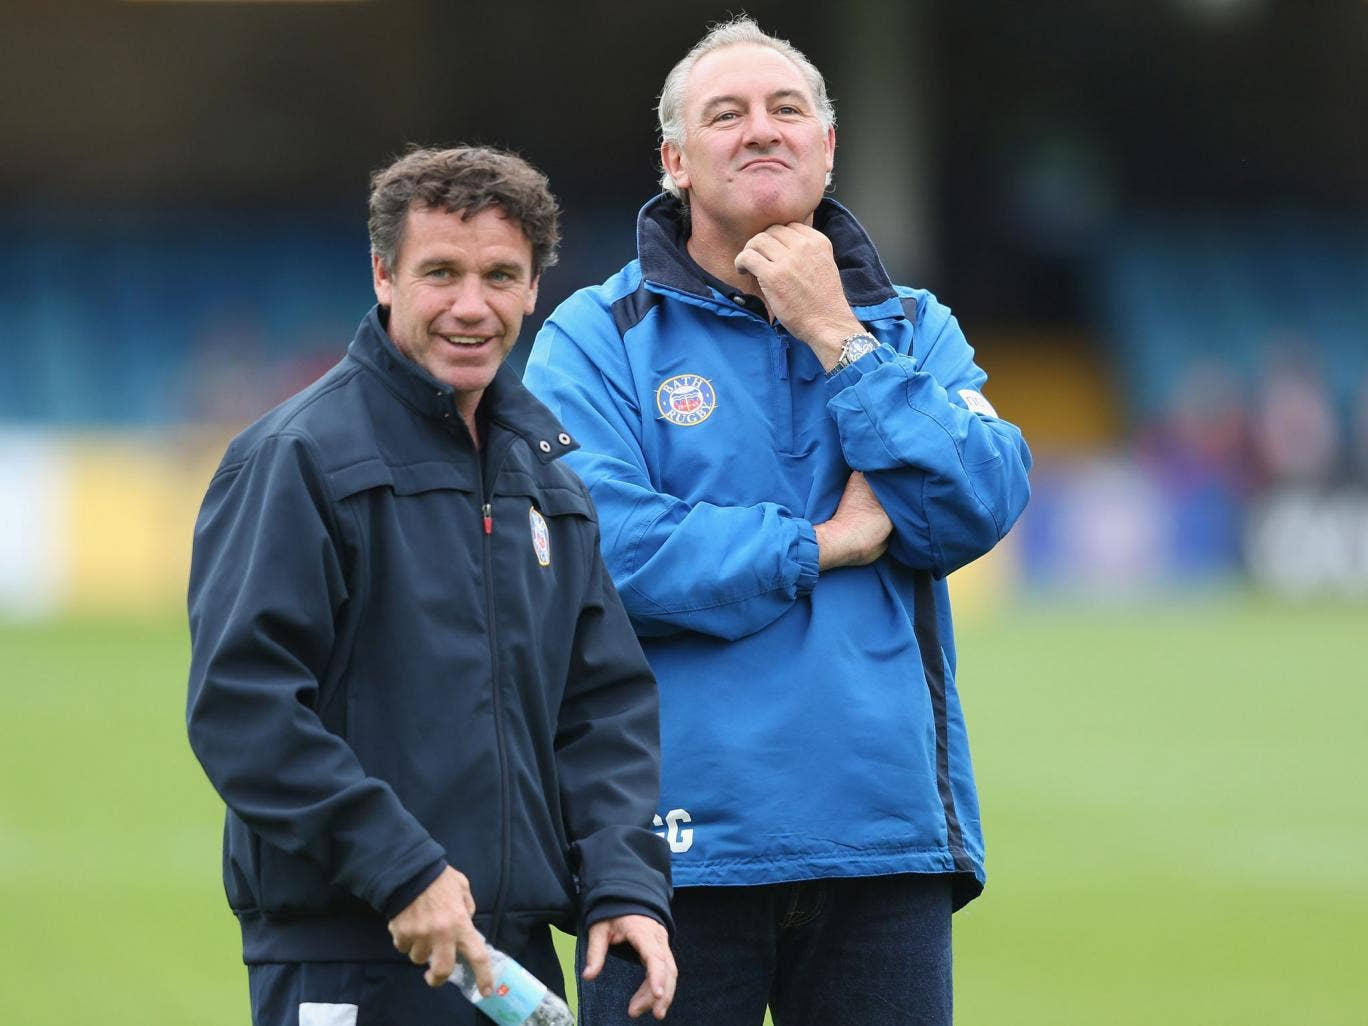 Gary Gold claimed he left Bath this week on good terms